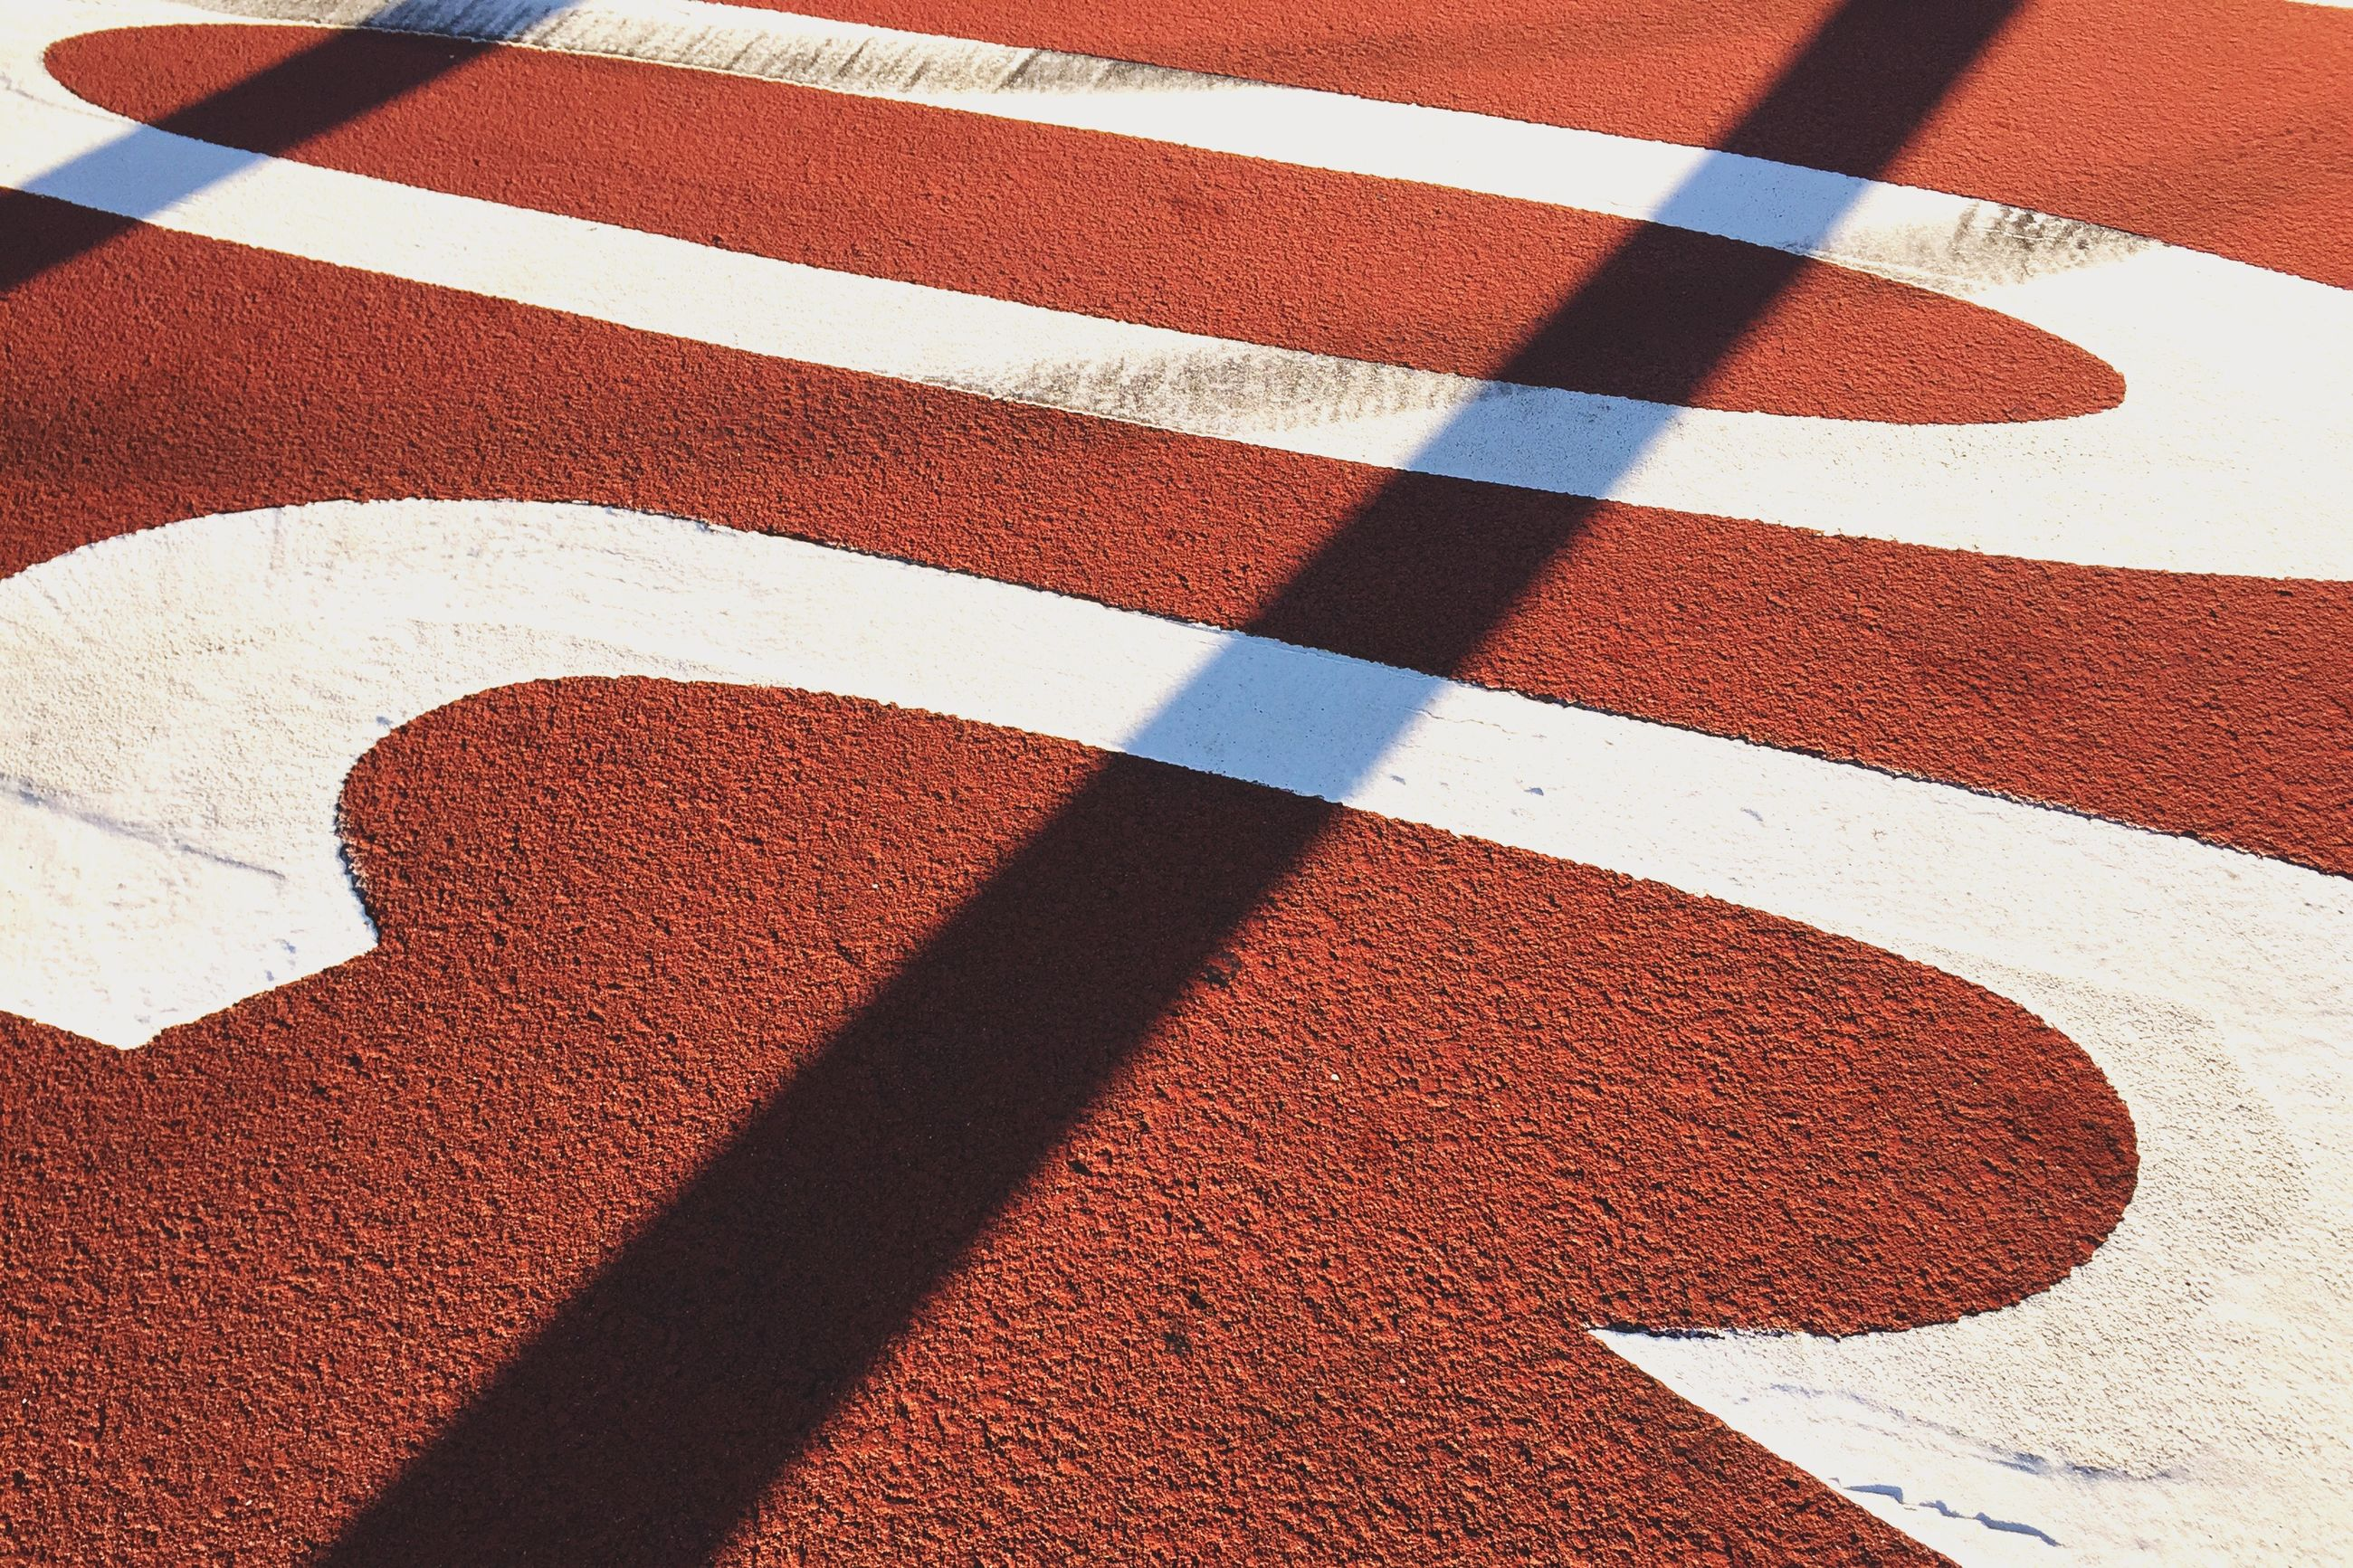 red, pattern, high angle view, full frame, textured, backgrounds, design, street, white color, multi colored, shadow, close-up, day, no people, road marking, sunlight, tiled floor, tile, outdoors, striped